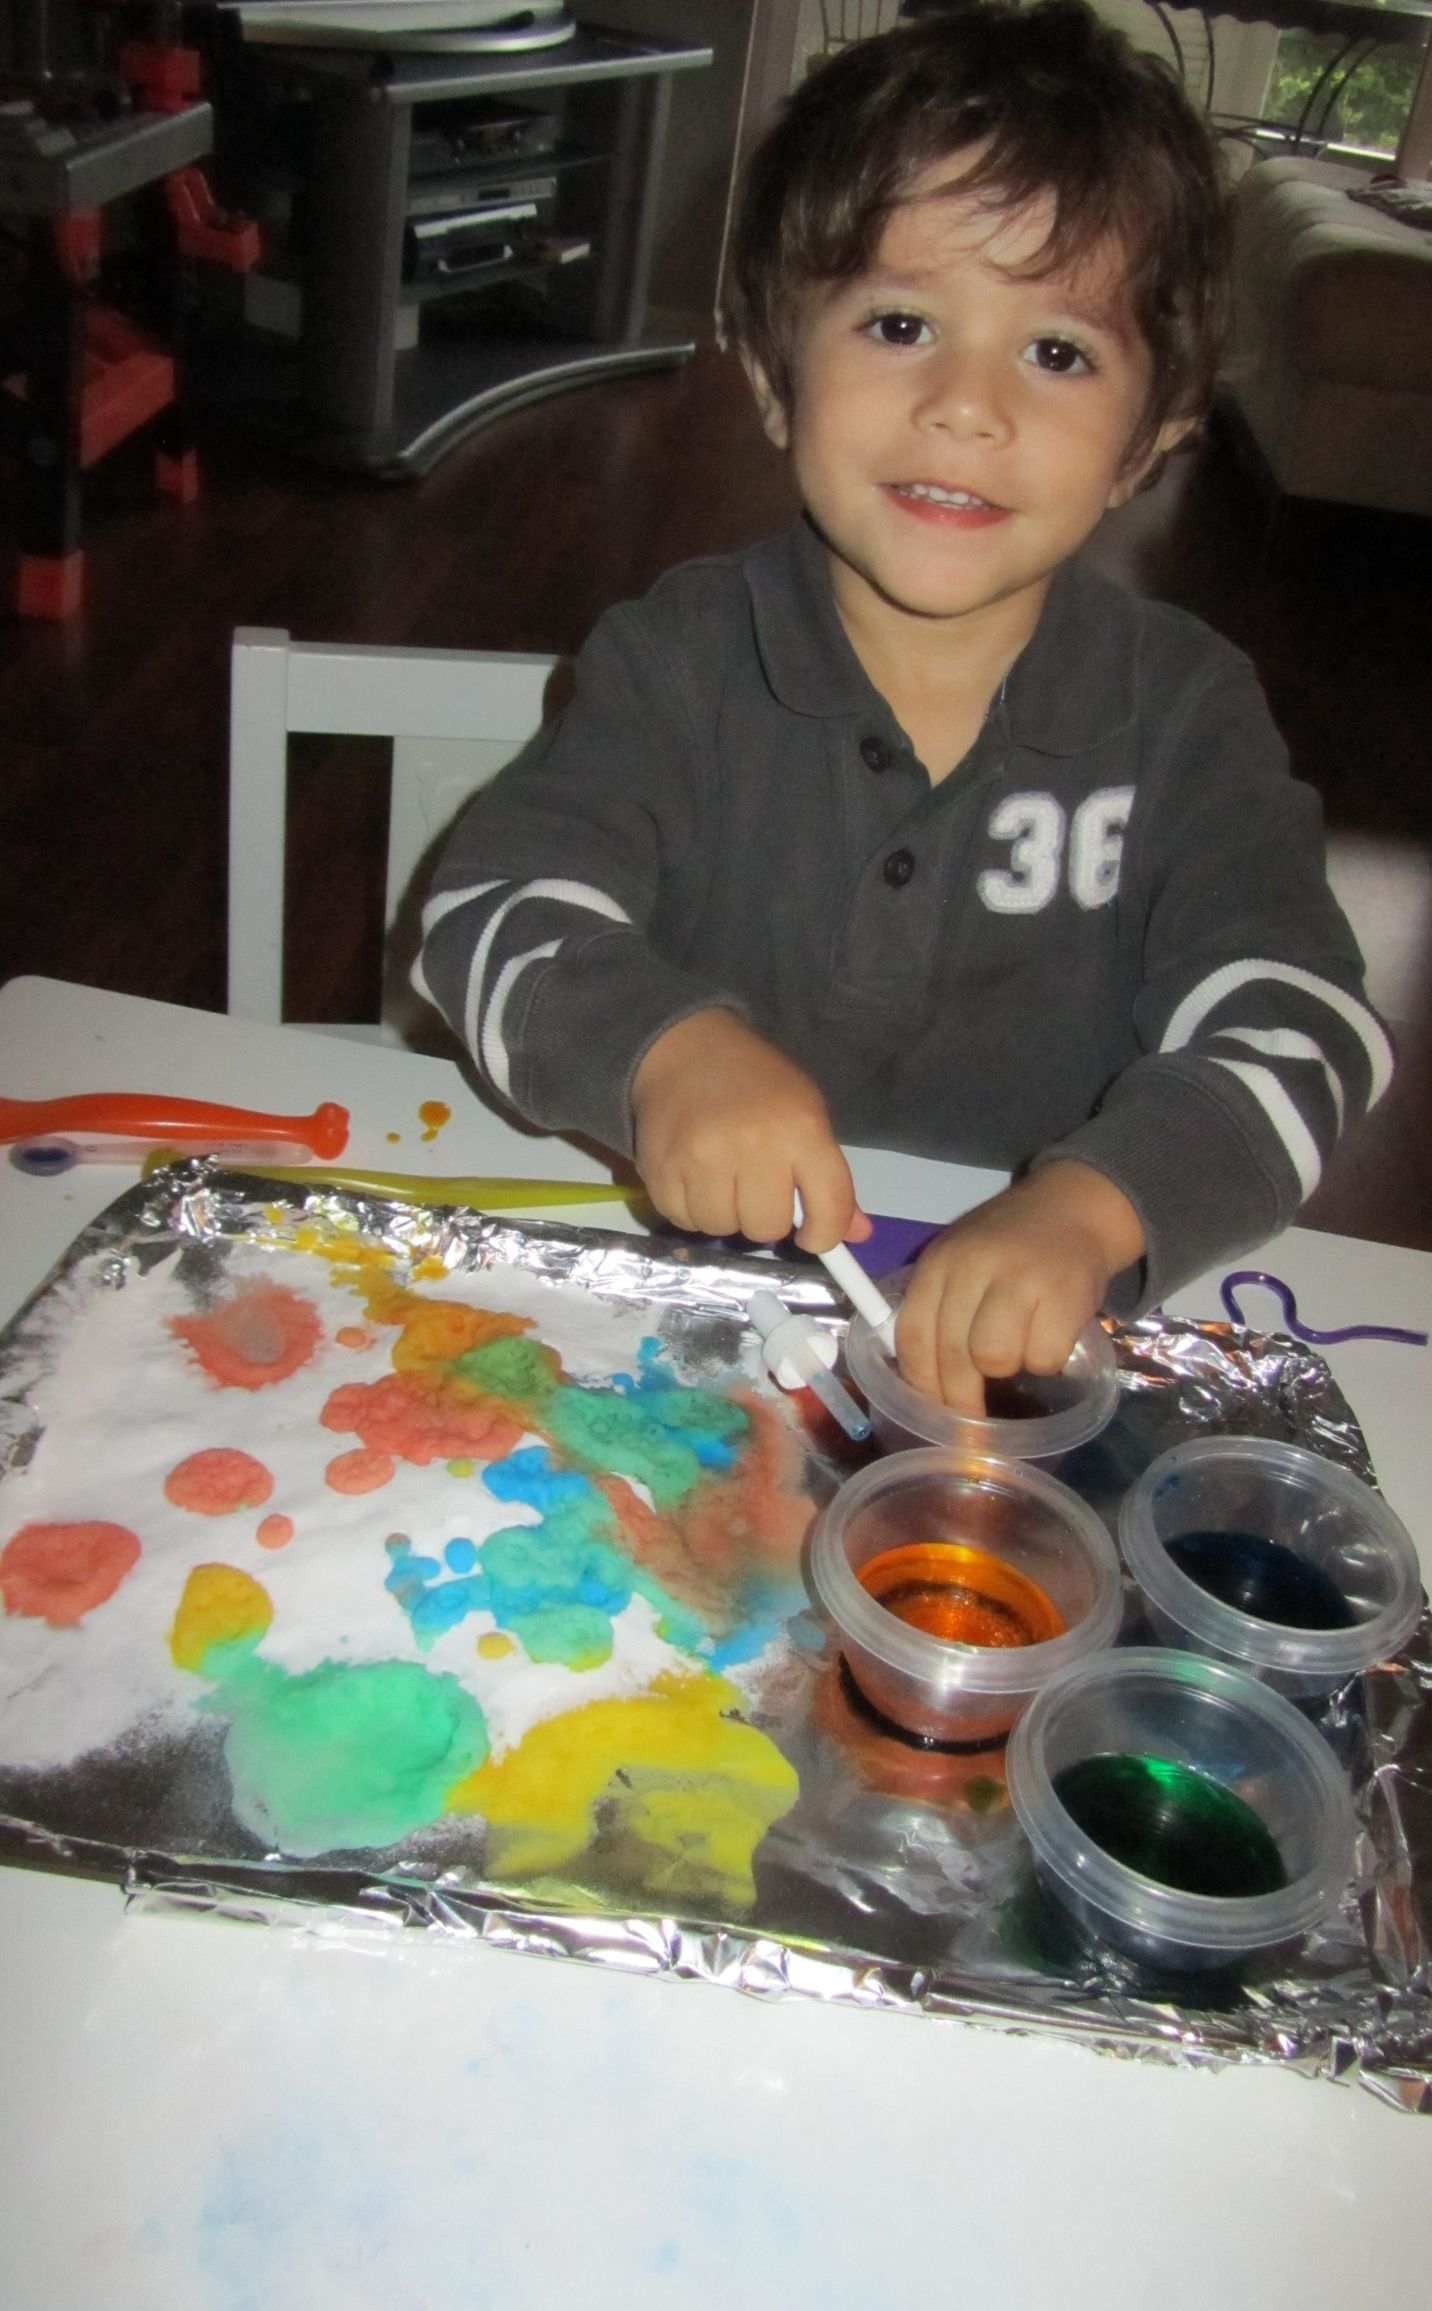 Baking Soda Vinegar And Food Coloring Experiment